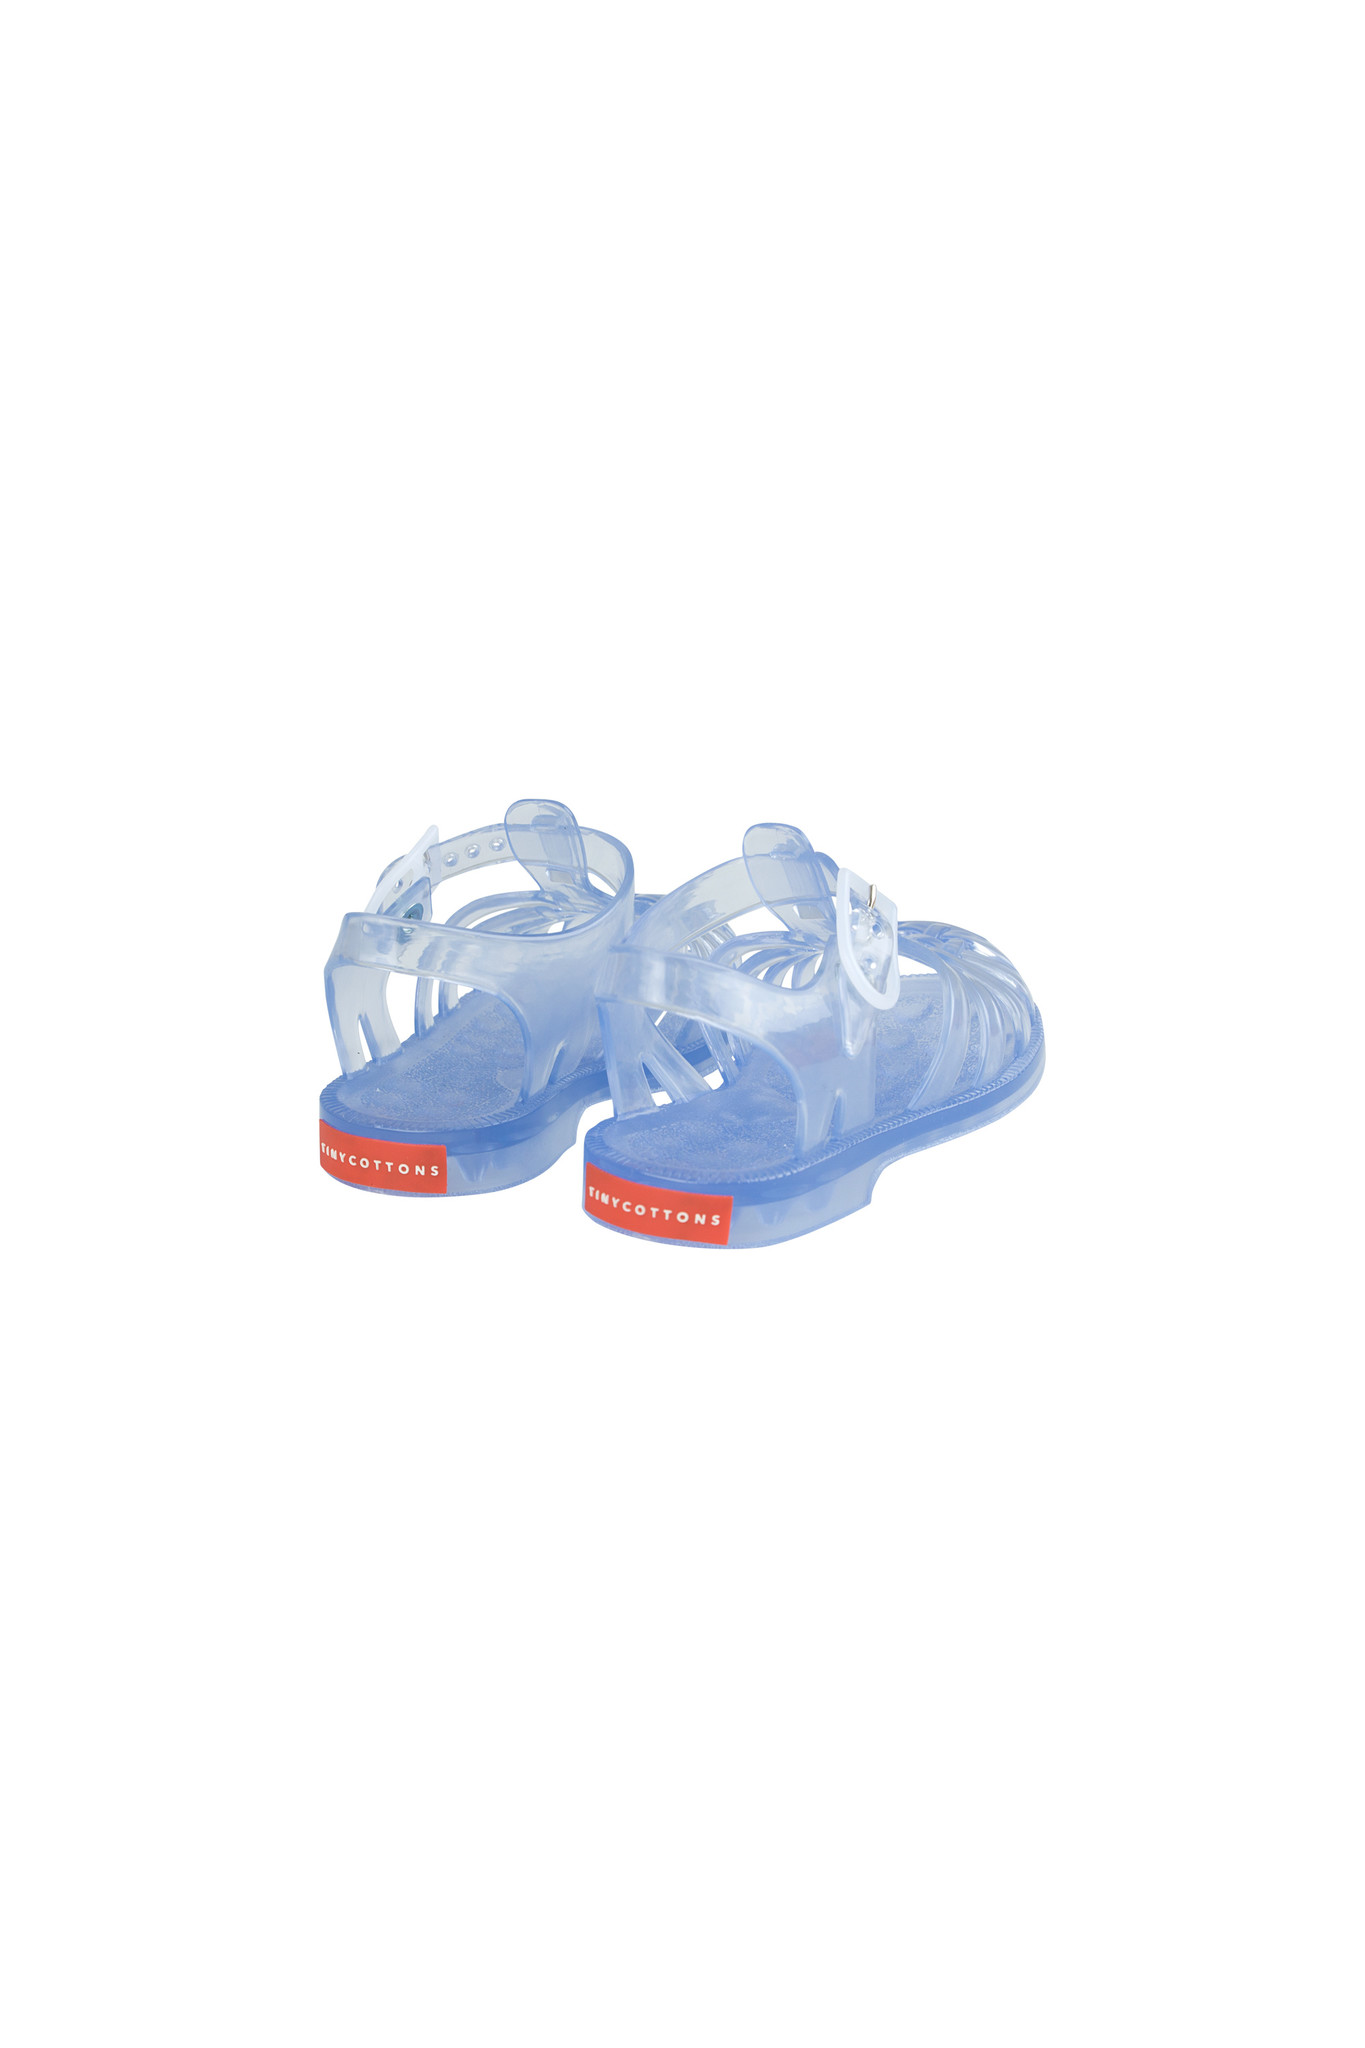 JELLY SANDALS - Transparent-3